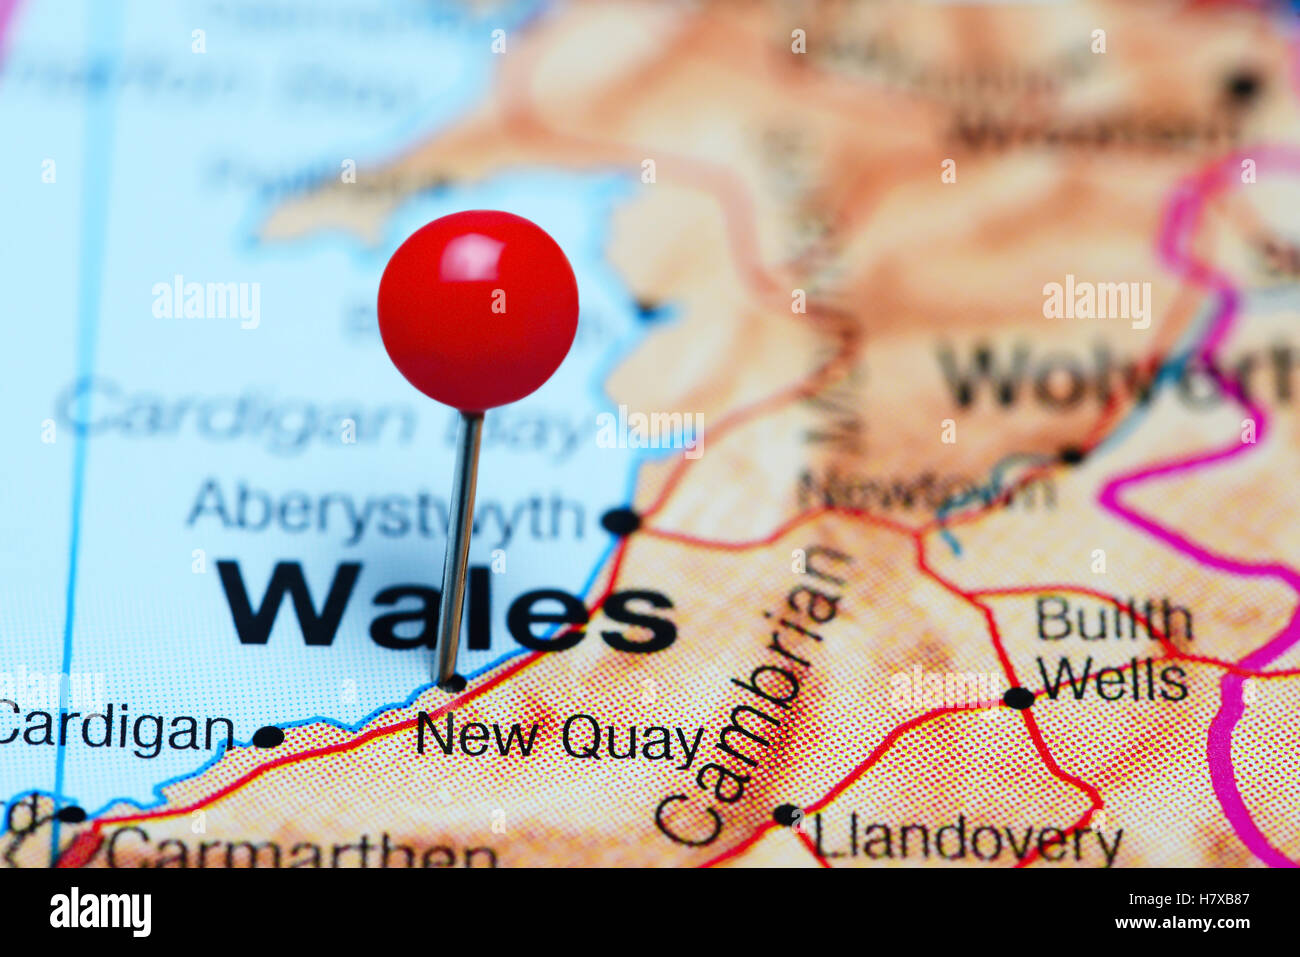 New Quay pinned on a map of Wales - Stock Image